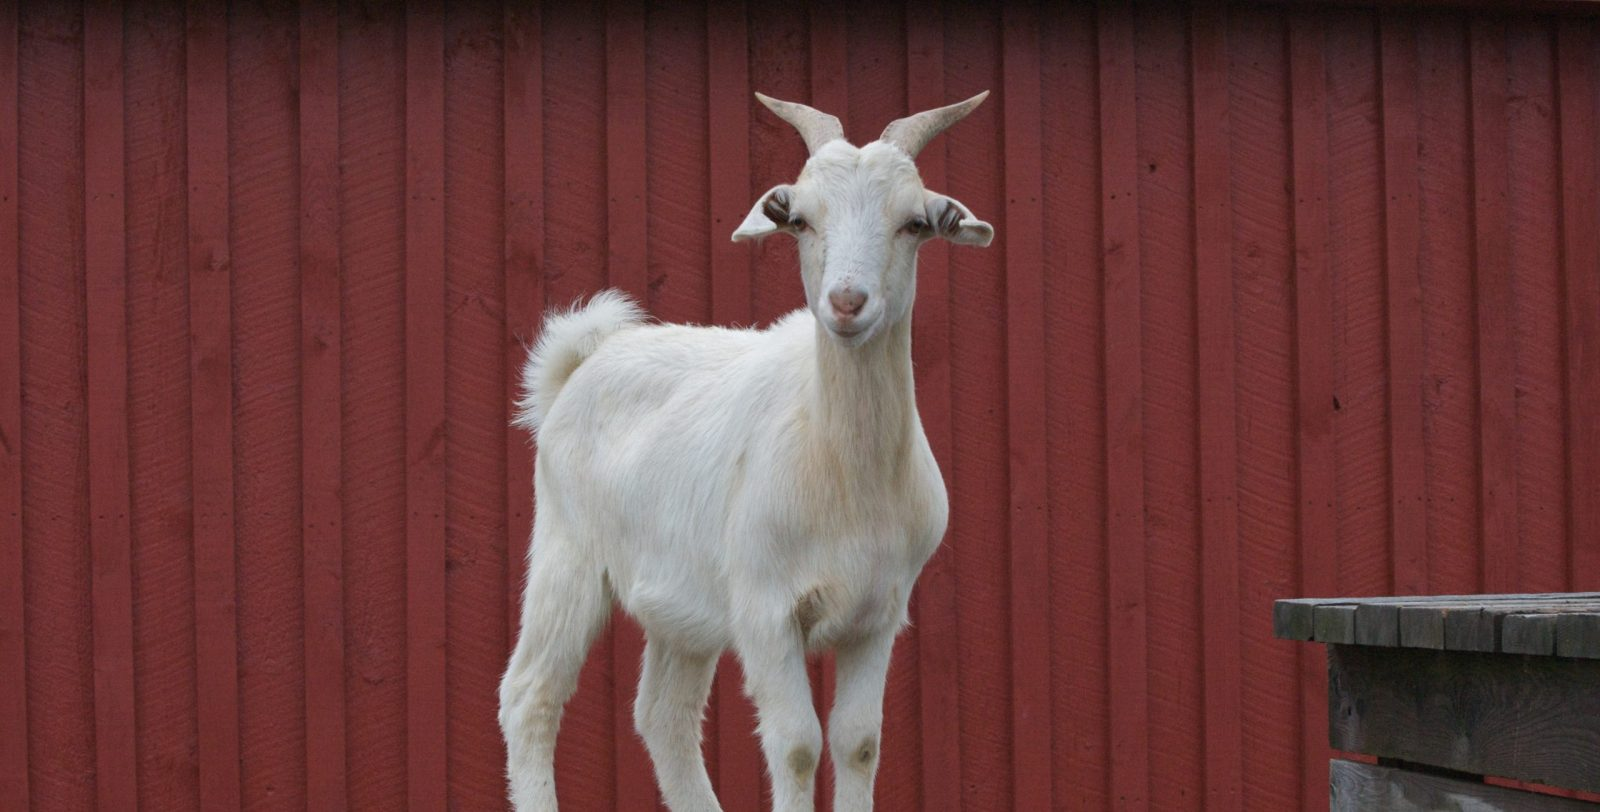 Jim goat at Farm Sanctuary